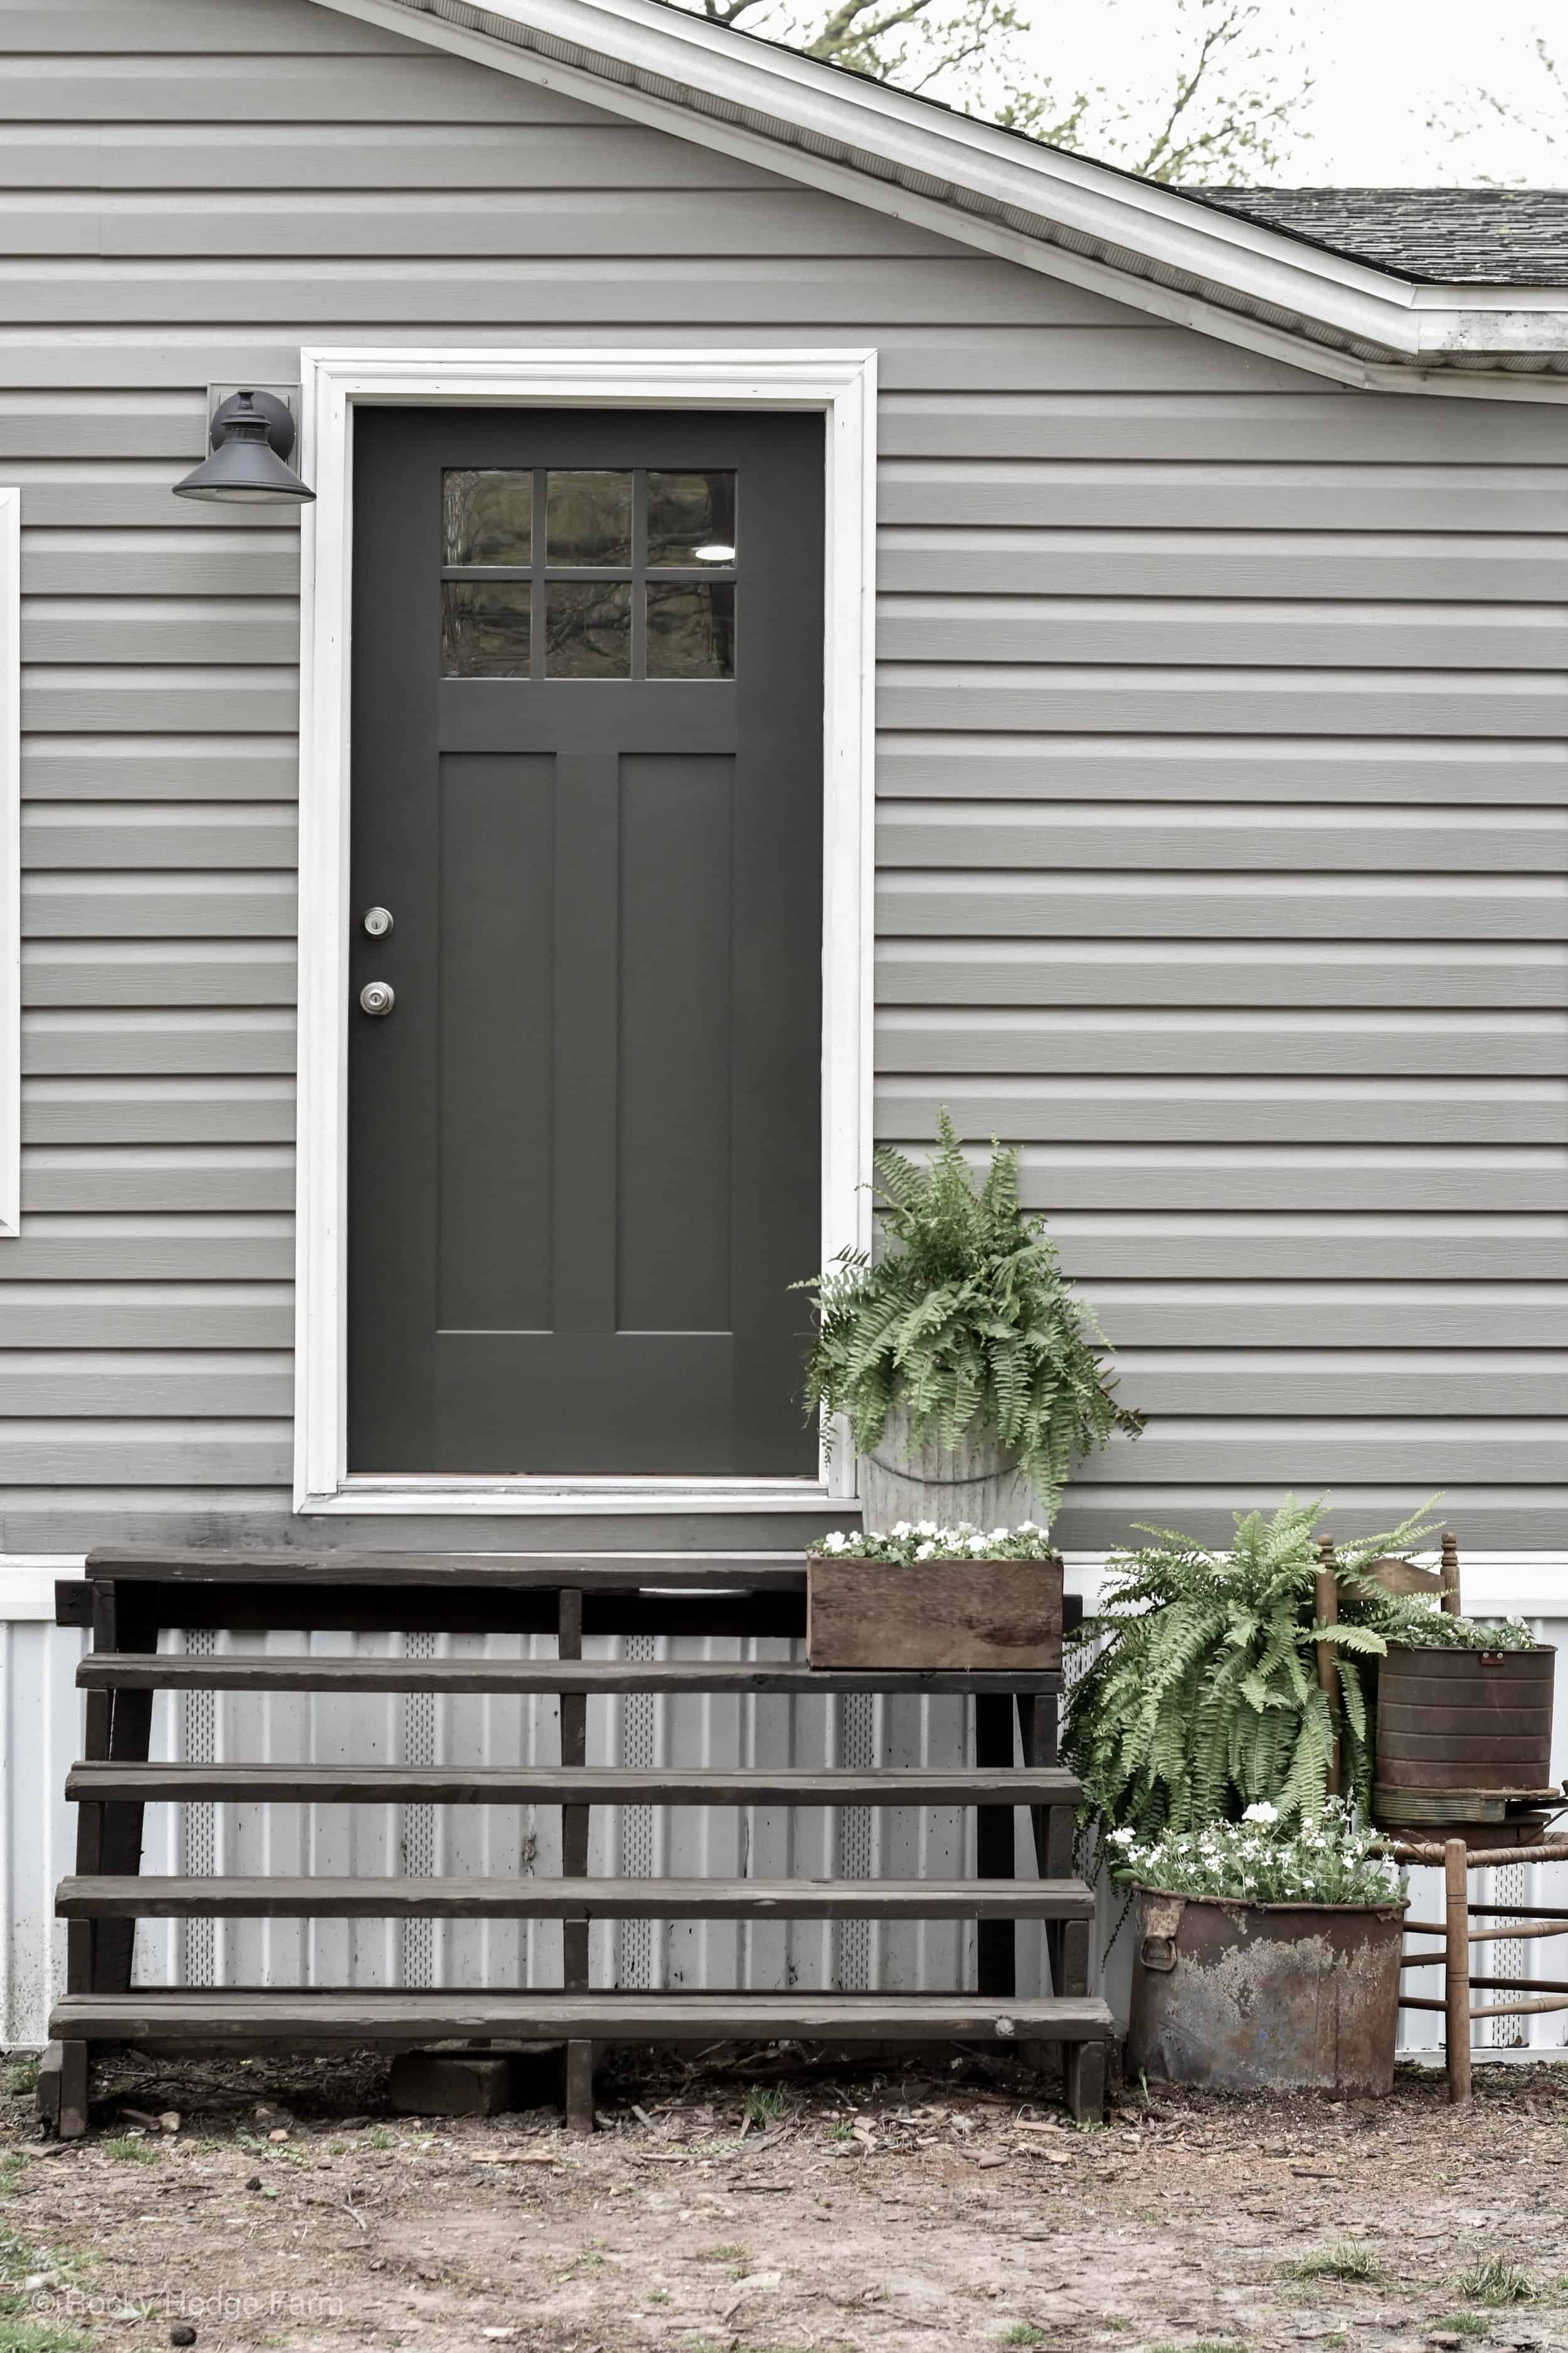 Mobile Home Spring Porch - Rocky Hedge Farm on